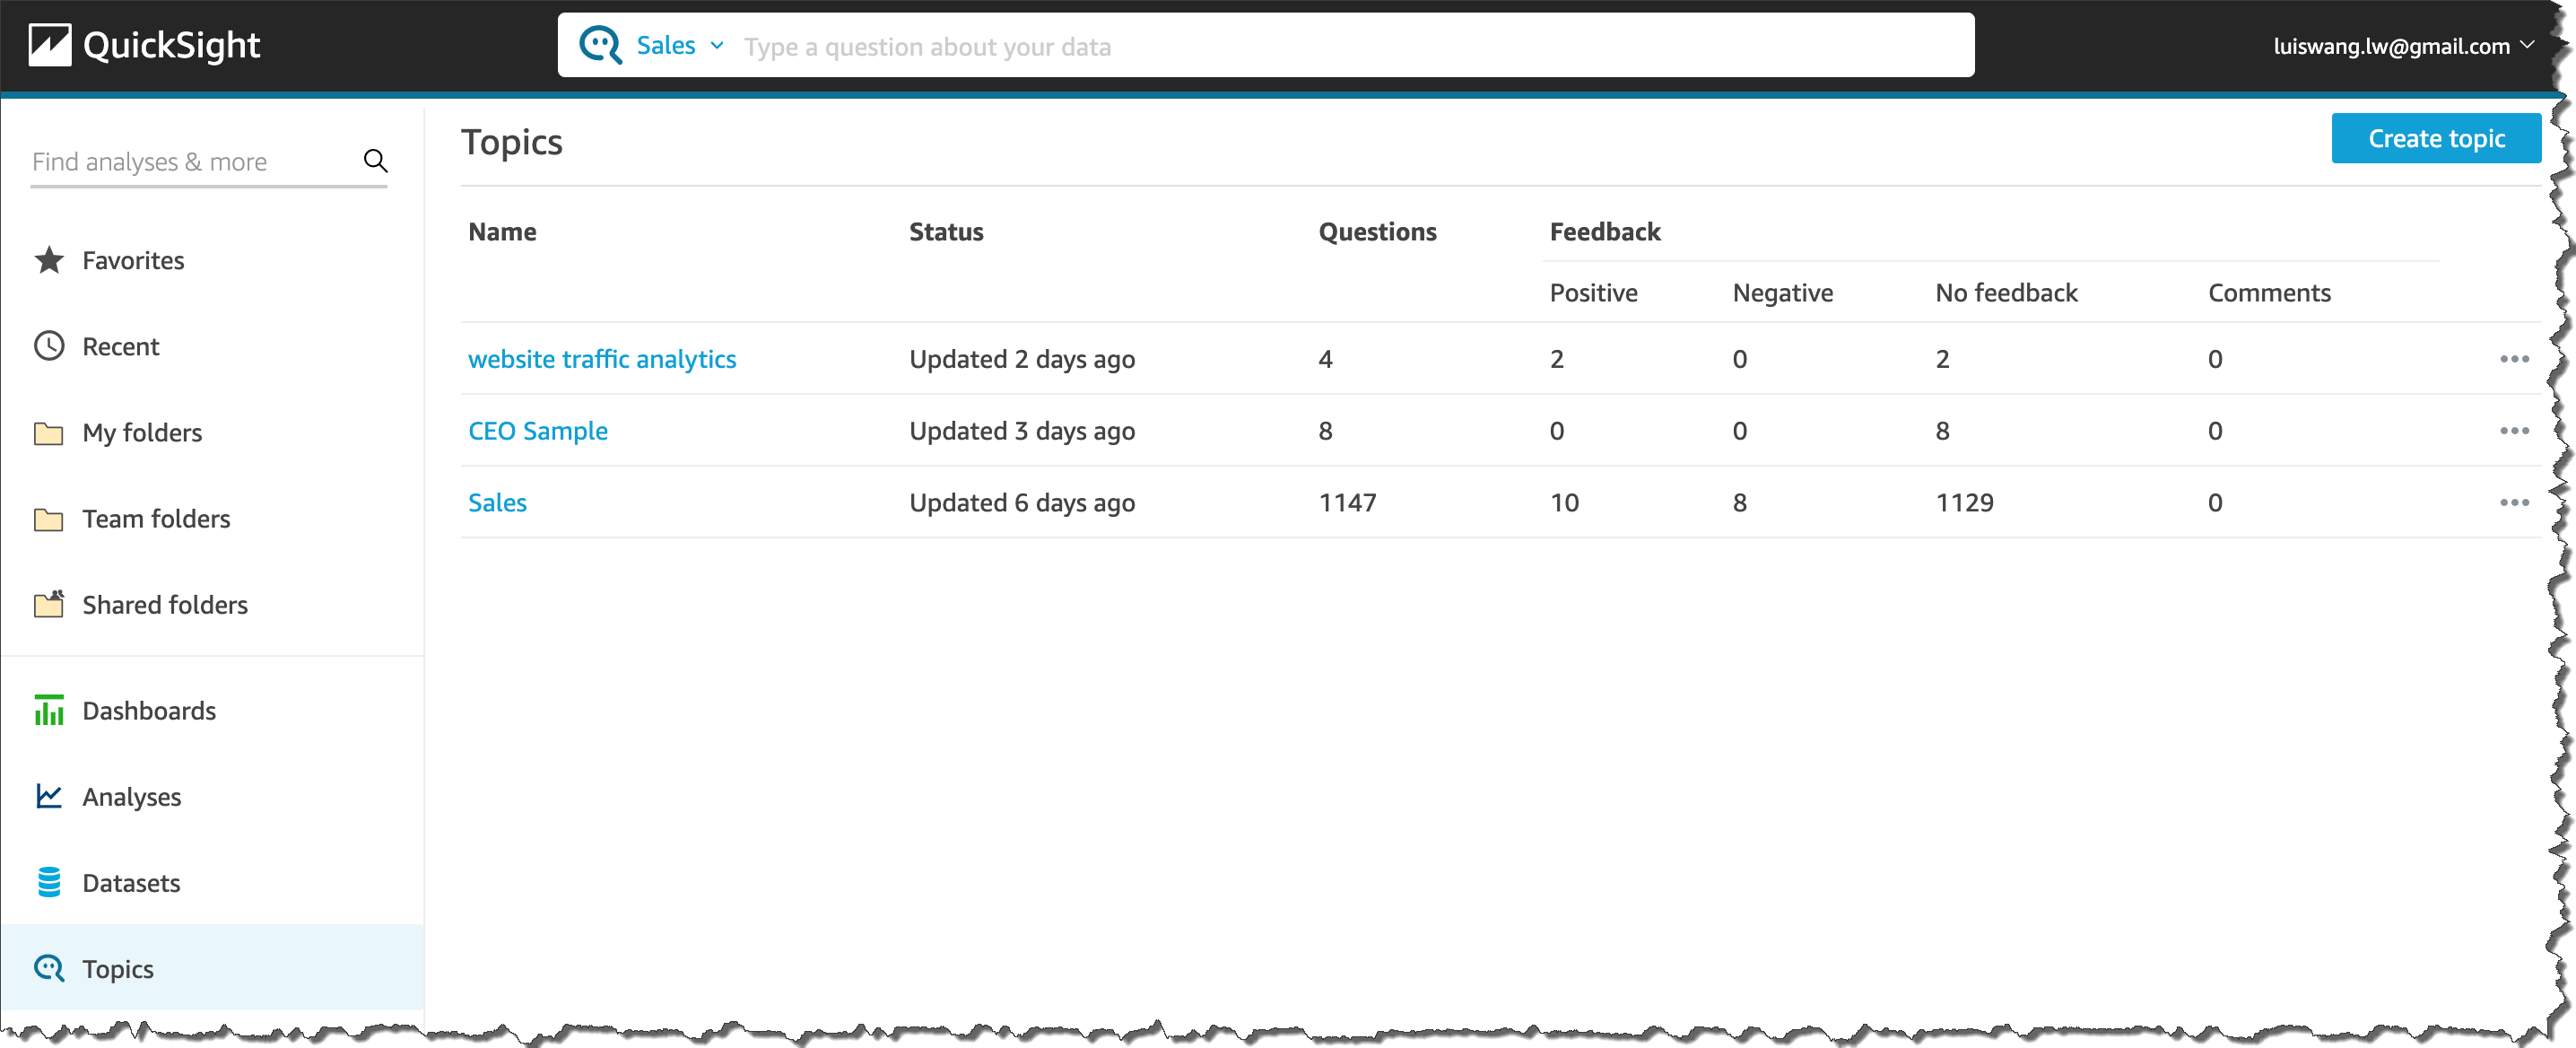 New – Amazon QuickSight Q Answers Natural-Language Questions About Business Data   AWS News Blog